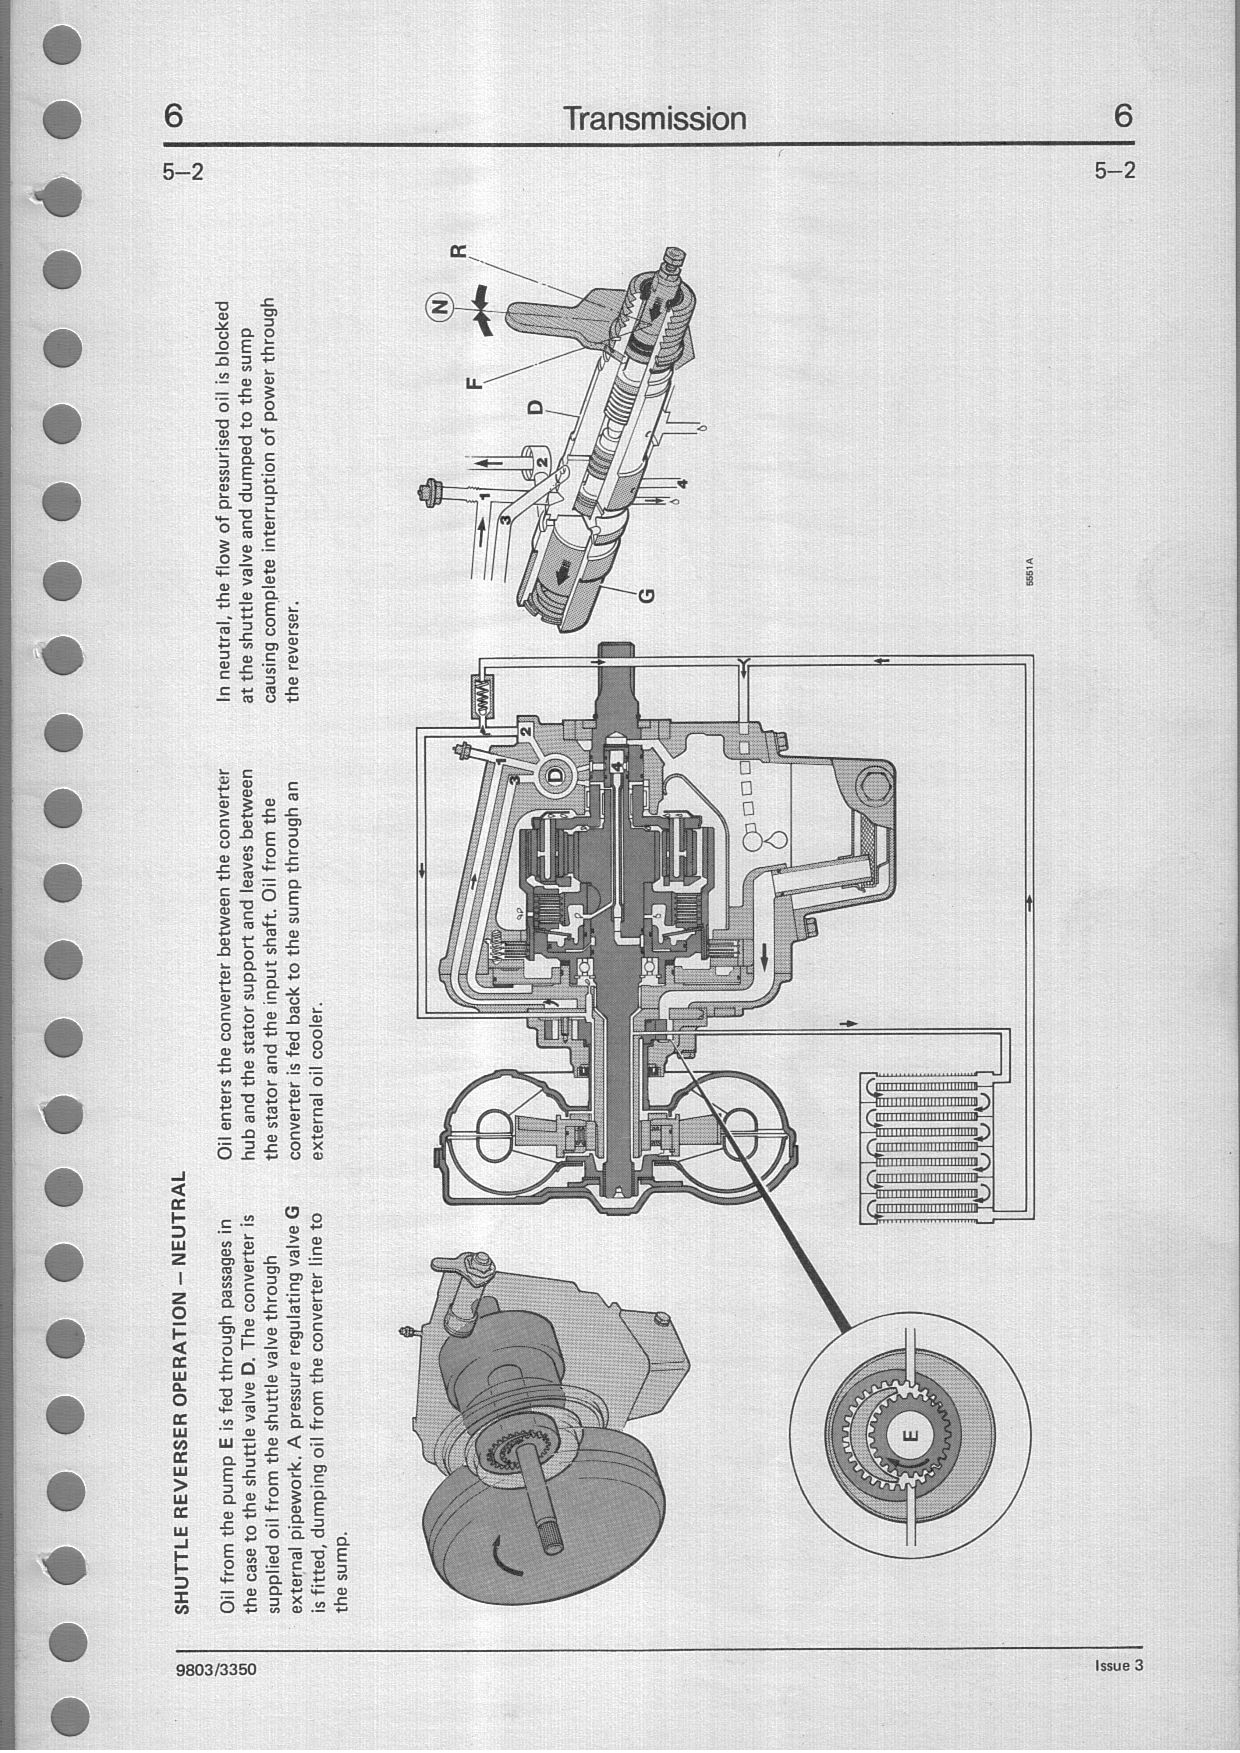 7 Way Plug Wiring Diagram Rv Trailer 1987 Jcb 1400b Backhoe Automatic Transmission Problem For Electric Brakes